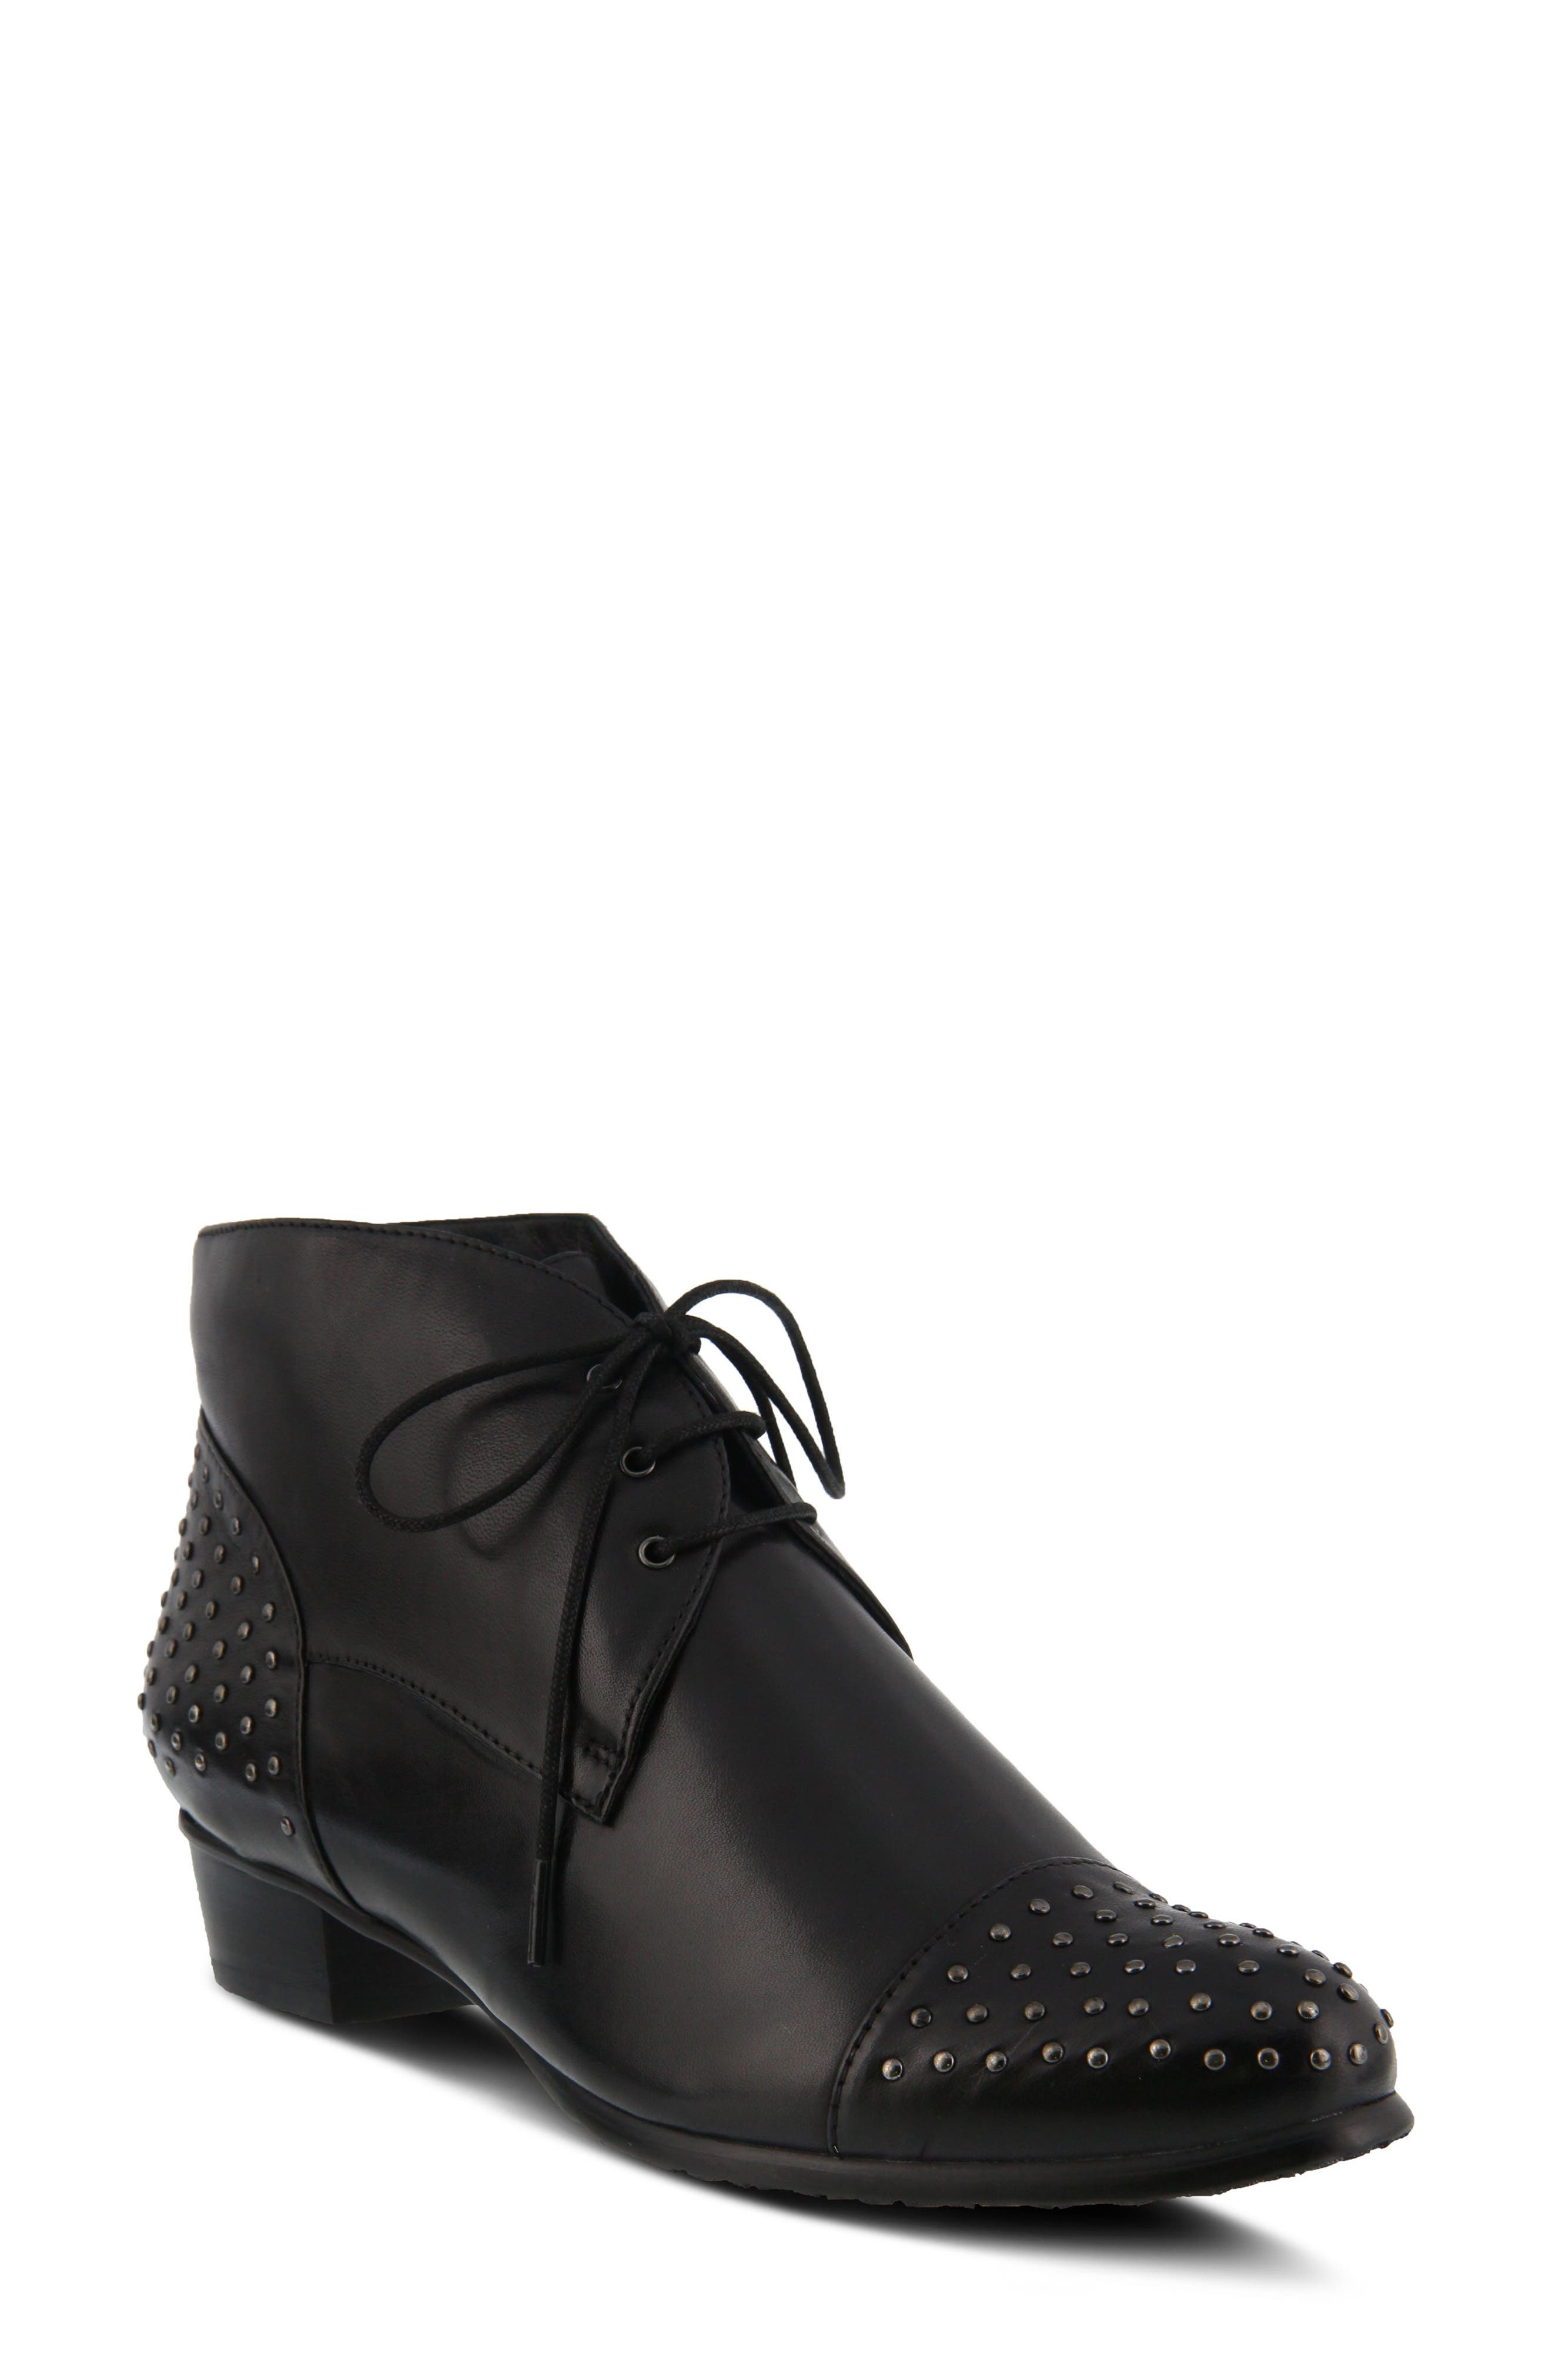 Main Image - Spring Step Giovanna Studded Bootie (Women)